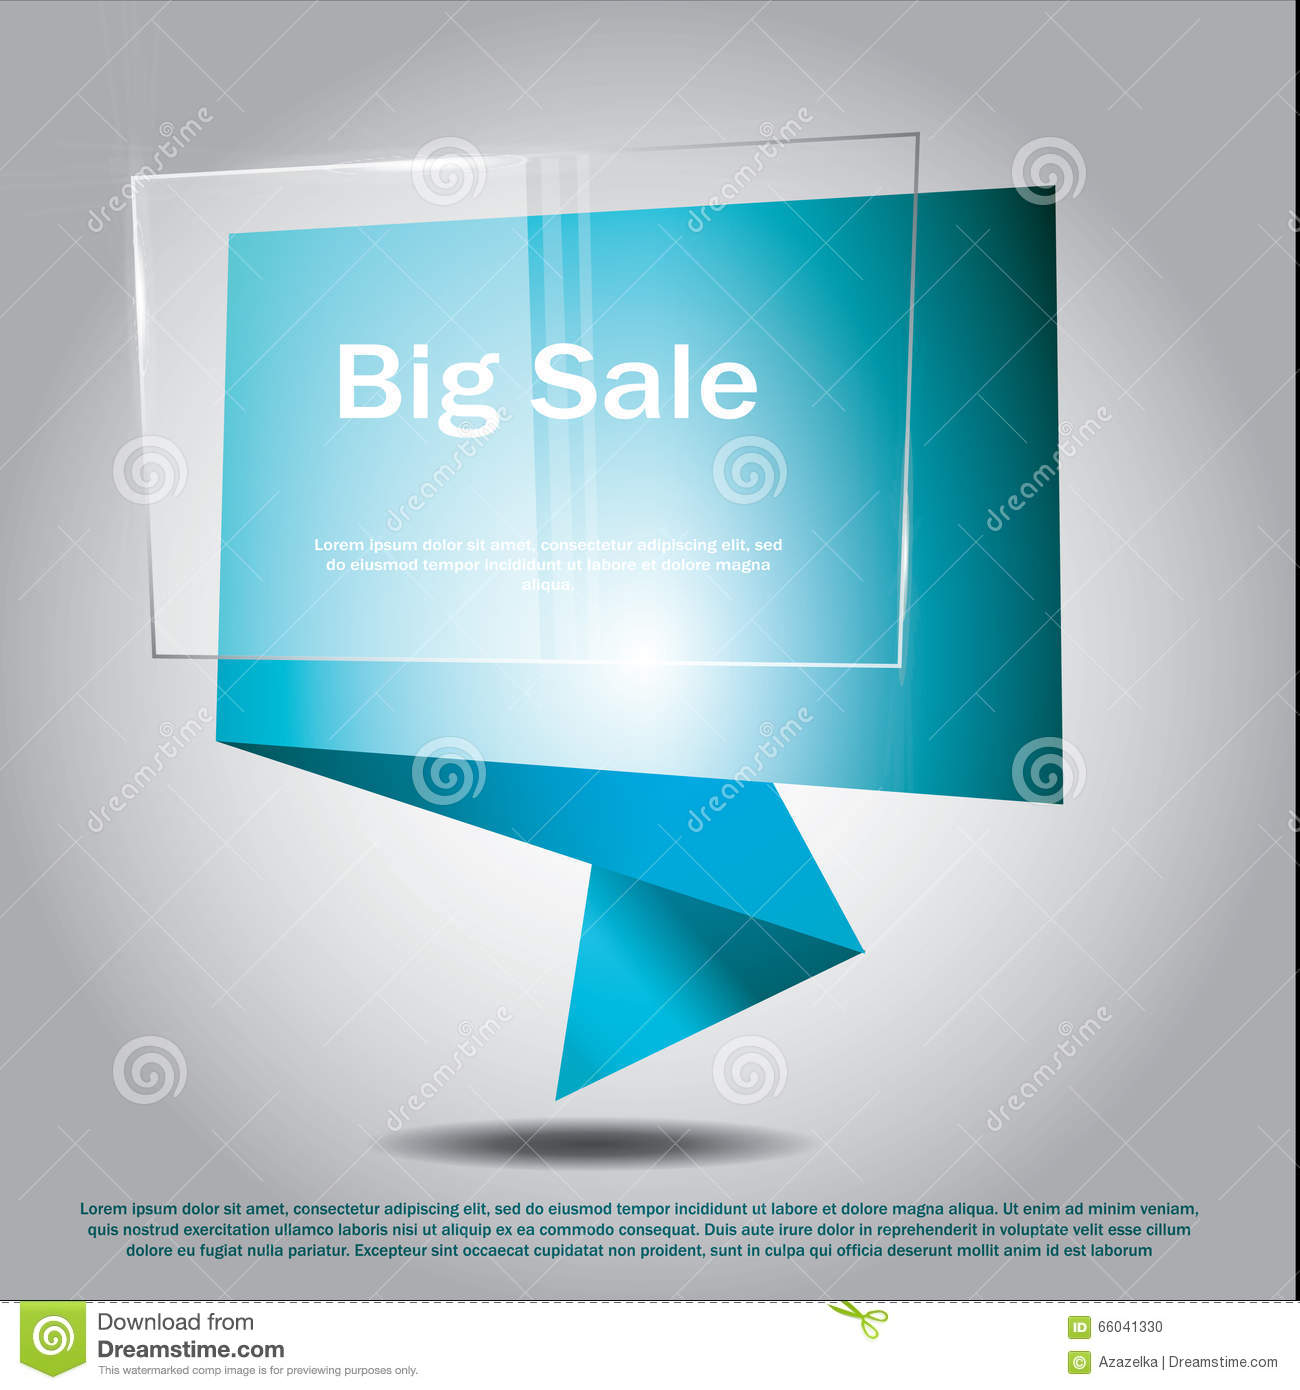 corporate sales paper Staples business advantage has all of your business supplies and solutions we  serve  sales dept inquiries: 1-844-243-8645 get started  get case studies,  blogs, videos, white papers, and other materials in our new resource center.